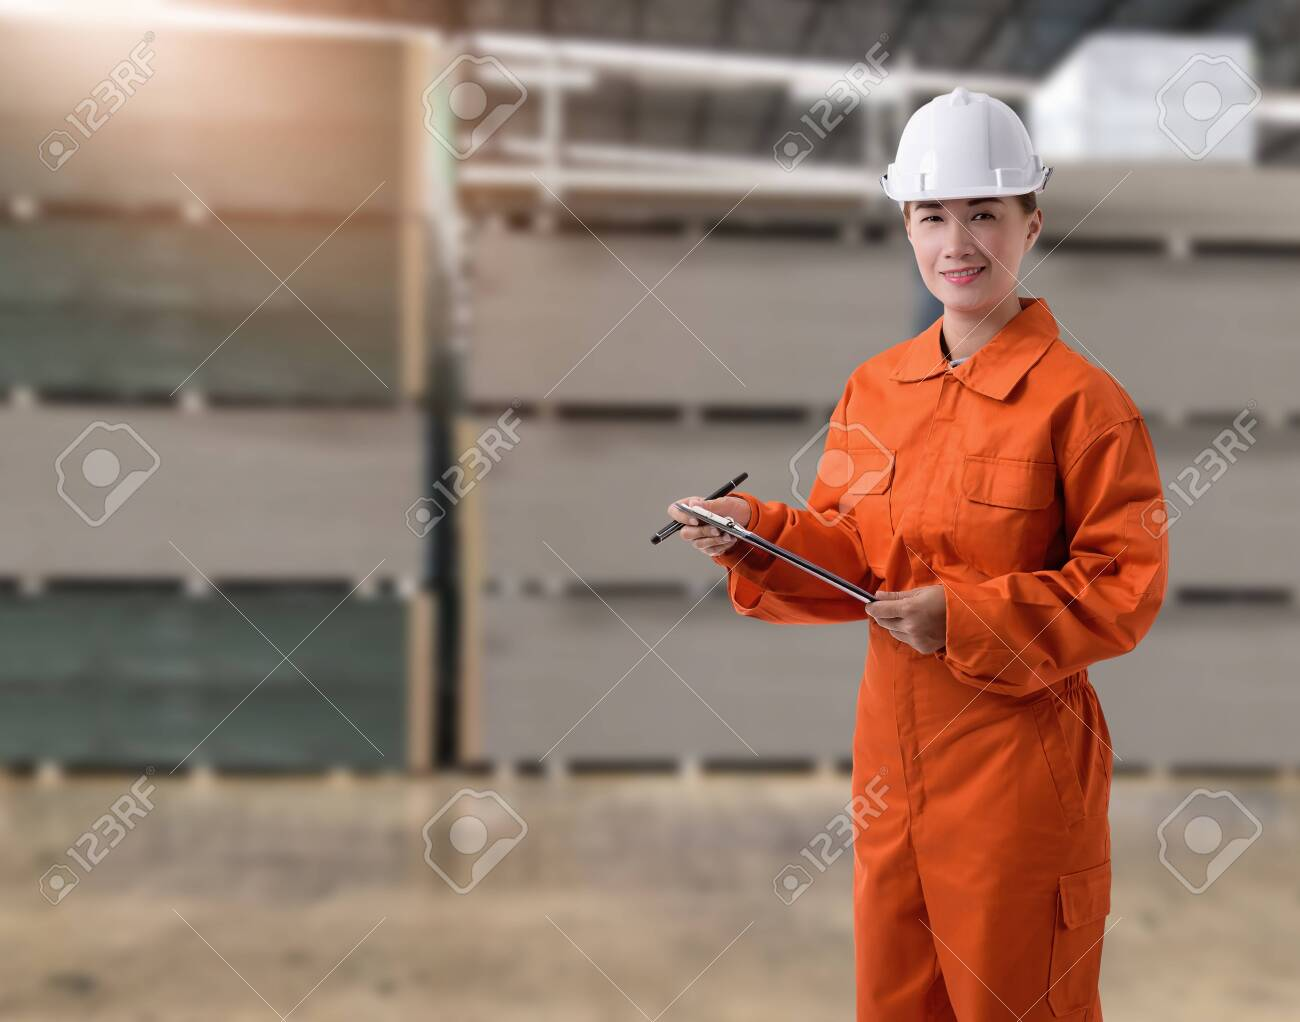 Portrait of Female staff warehouse operator with Blurred the background of Construction material on product shelf in store - 148082217